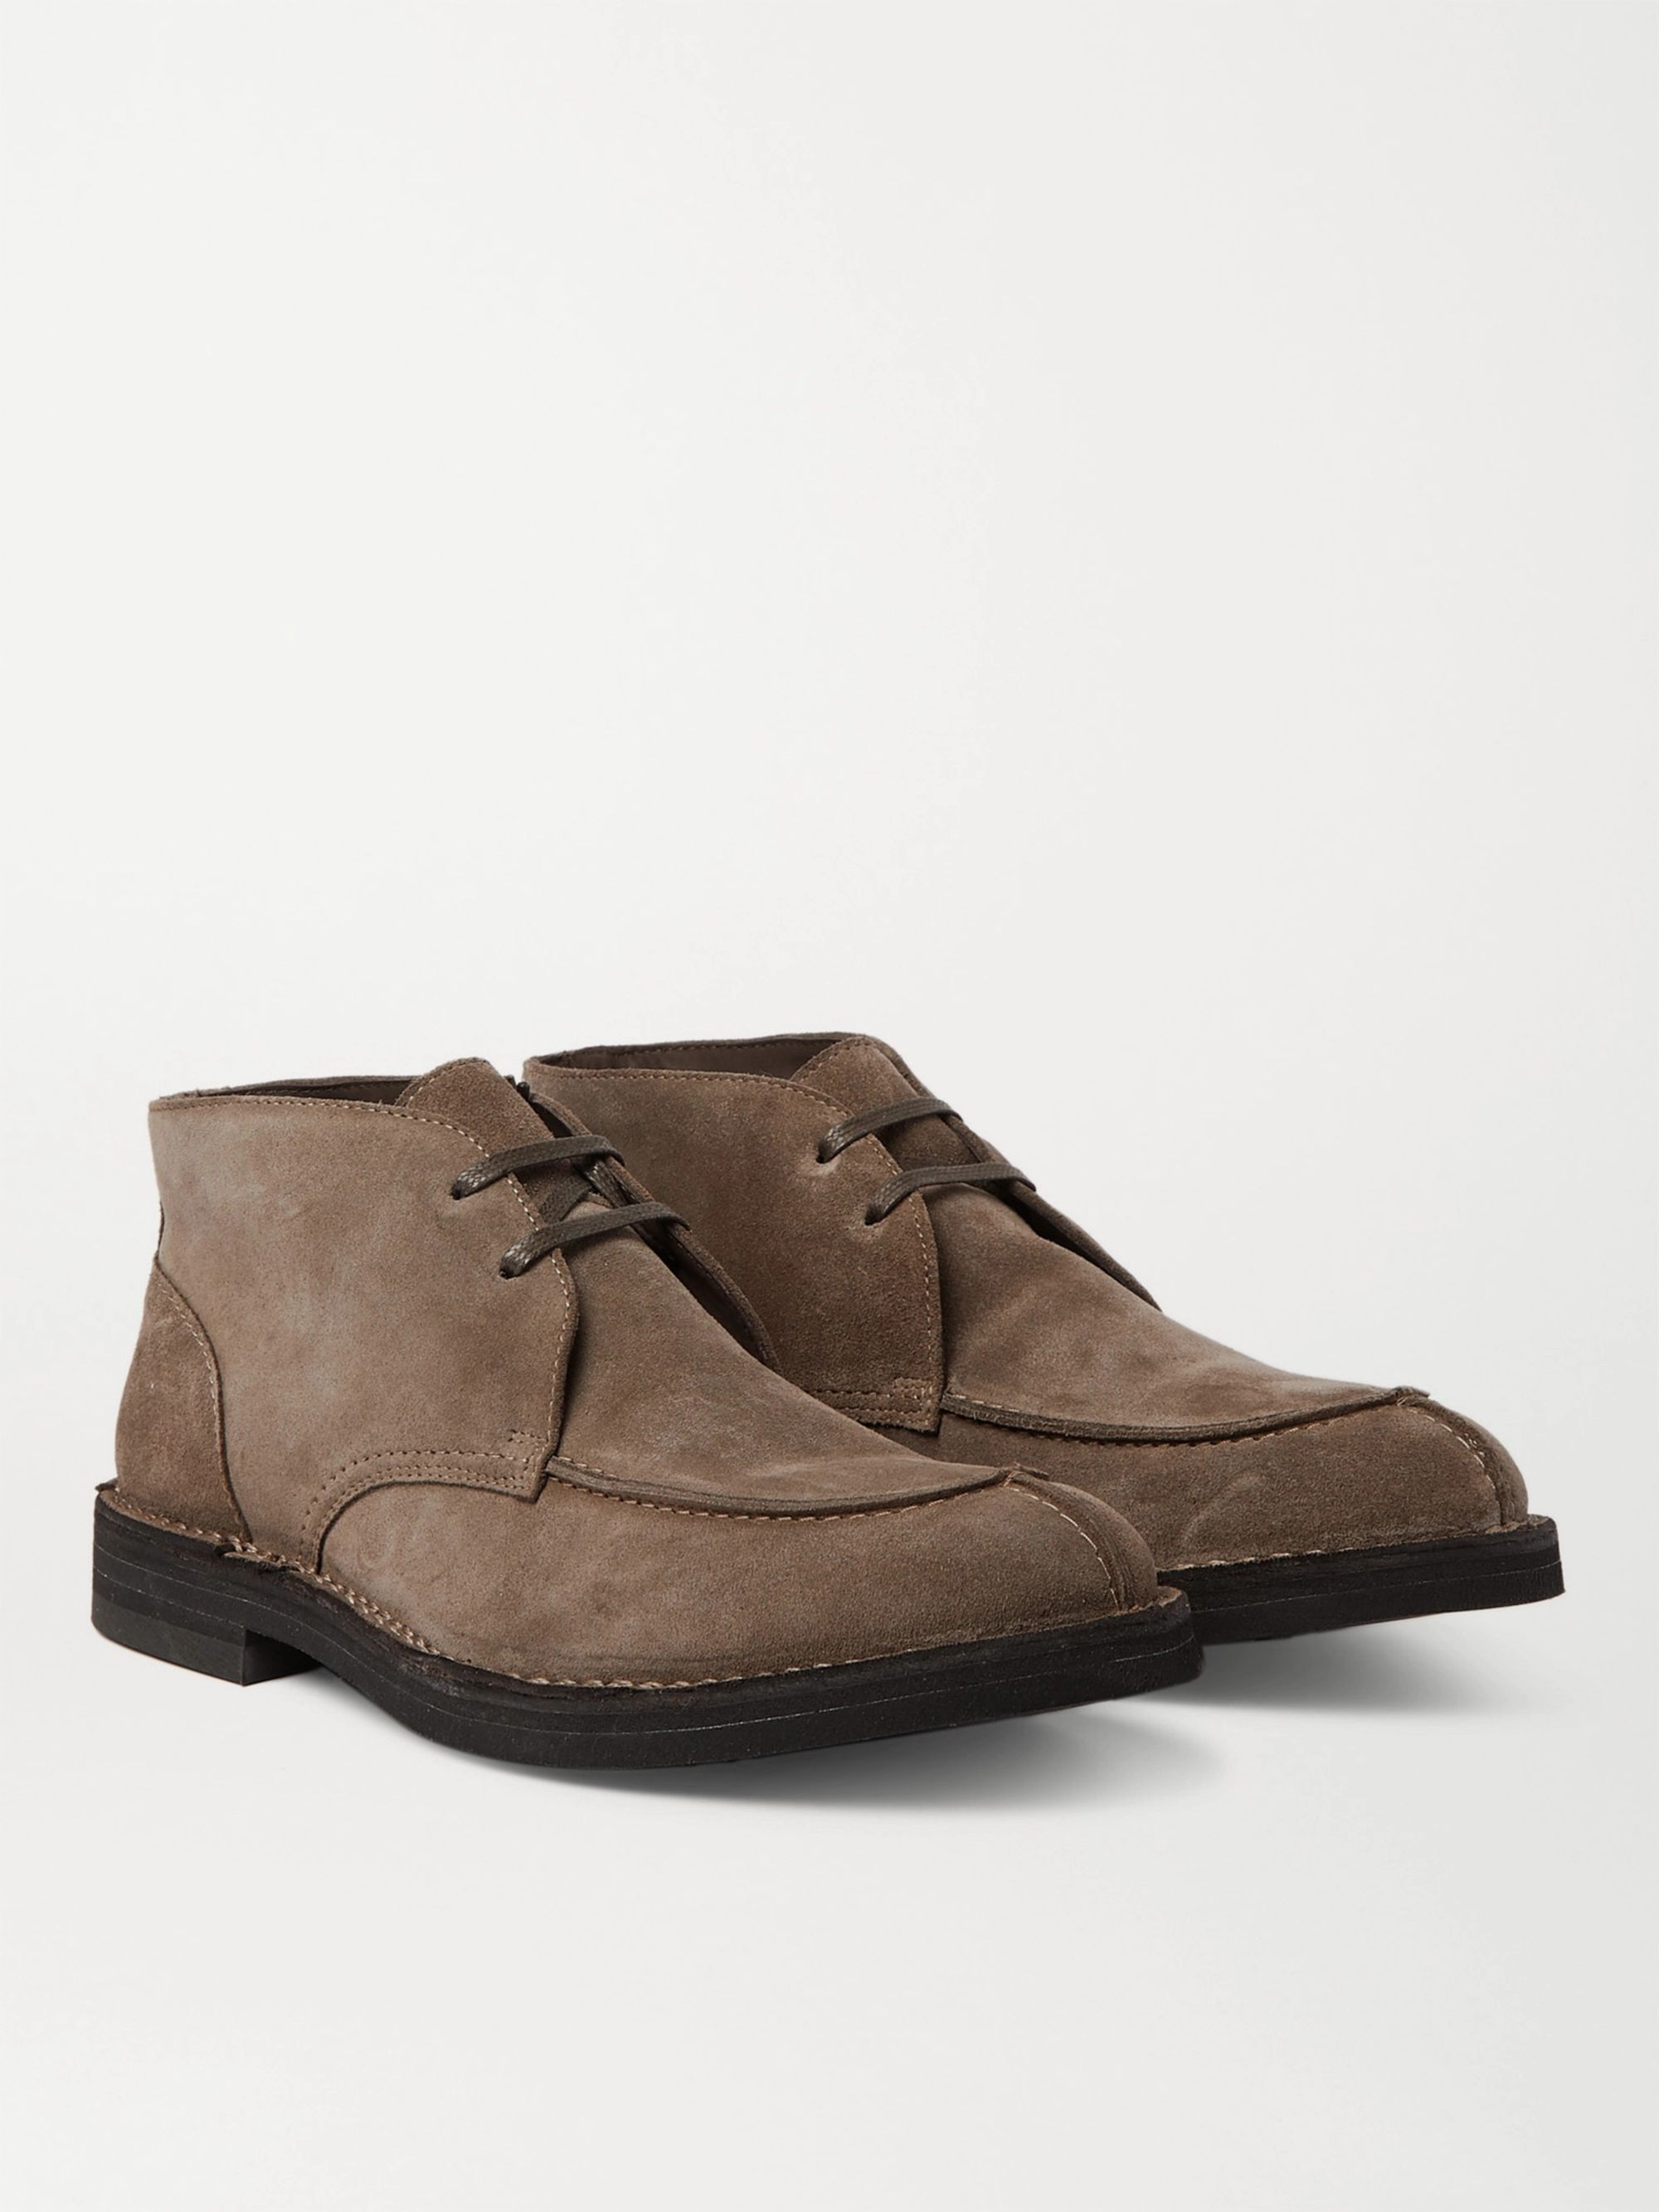 Mr P. Shearling-Lined Split-Toe Suede Chukka Boots